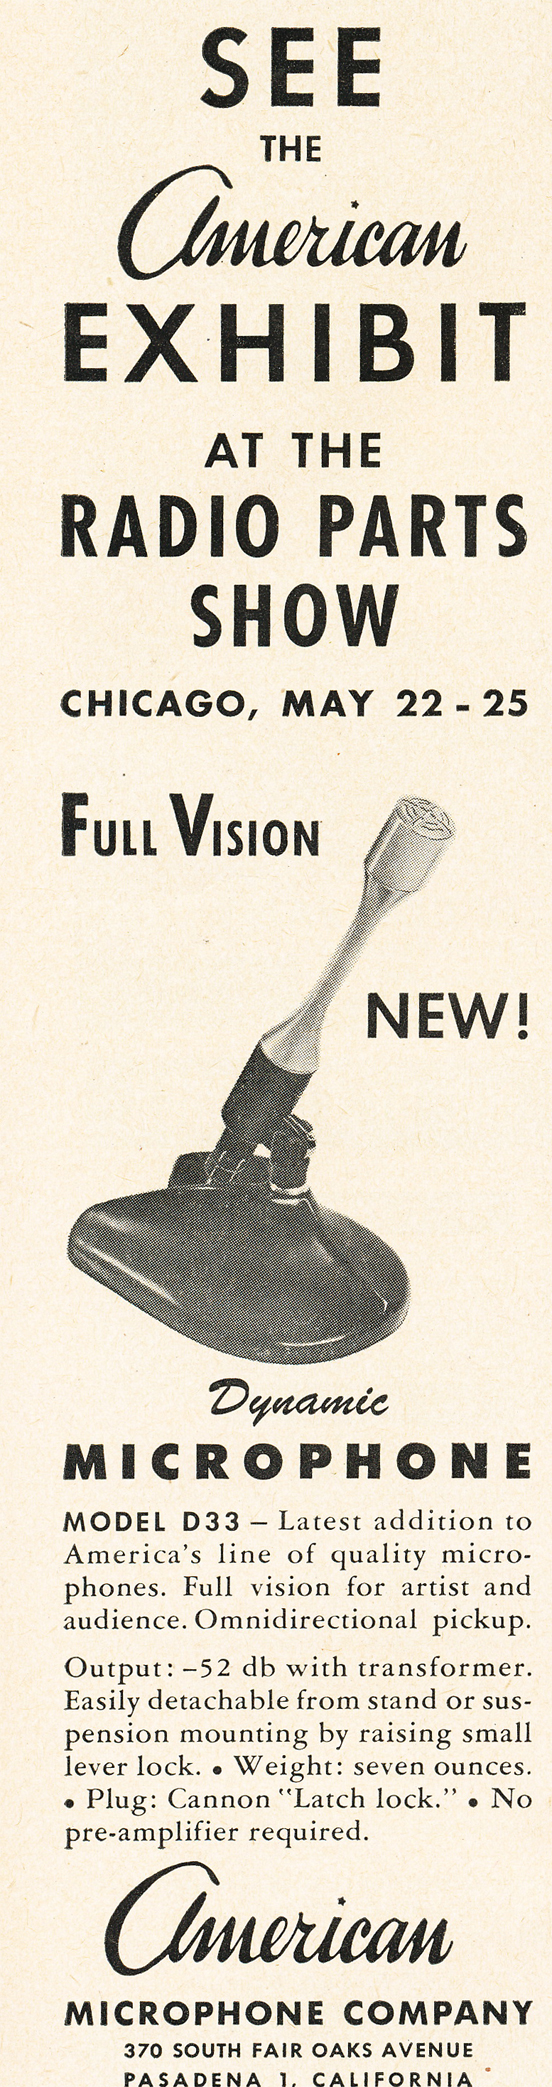 1950 ad for American microphnes in   Reel2ReelTexas.com's vintage recording collection